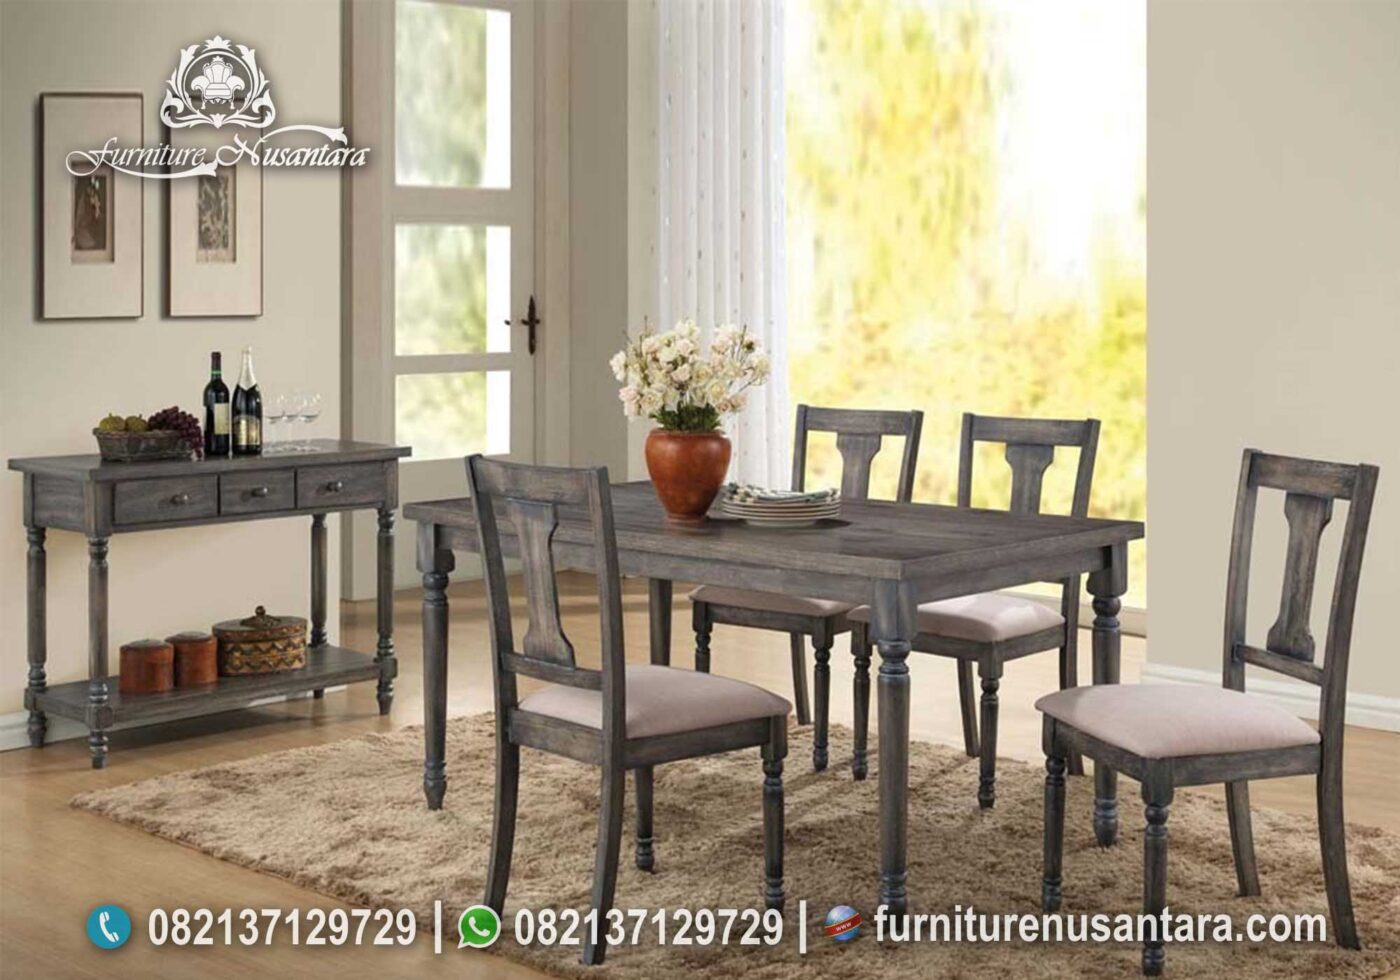 Jual Set Meja Makan Rustic Model MM-52